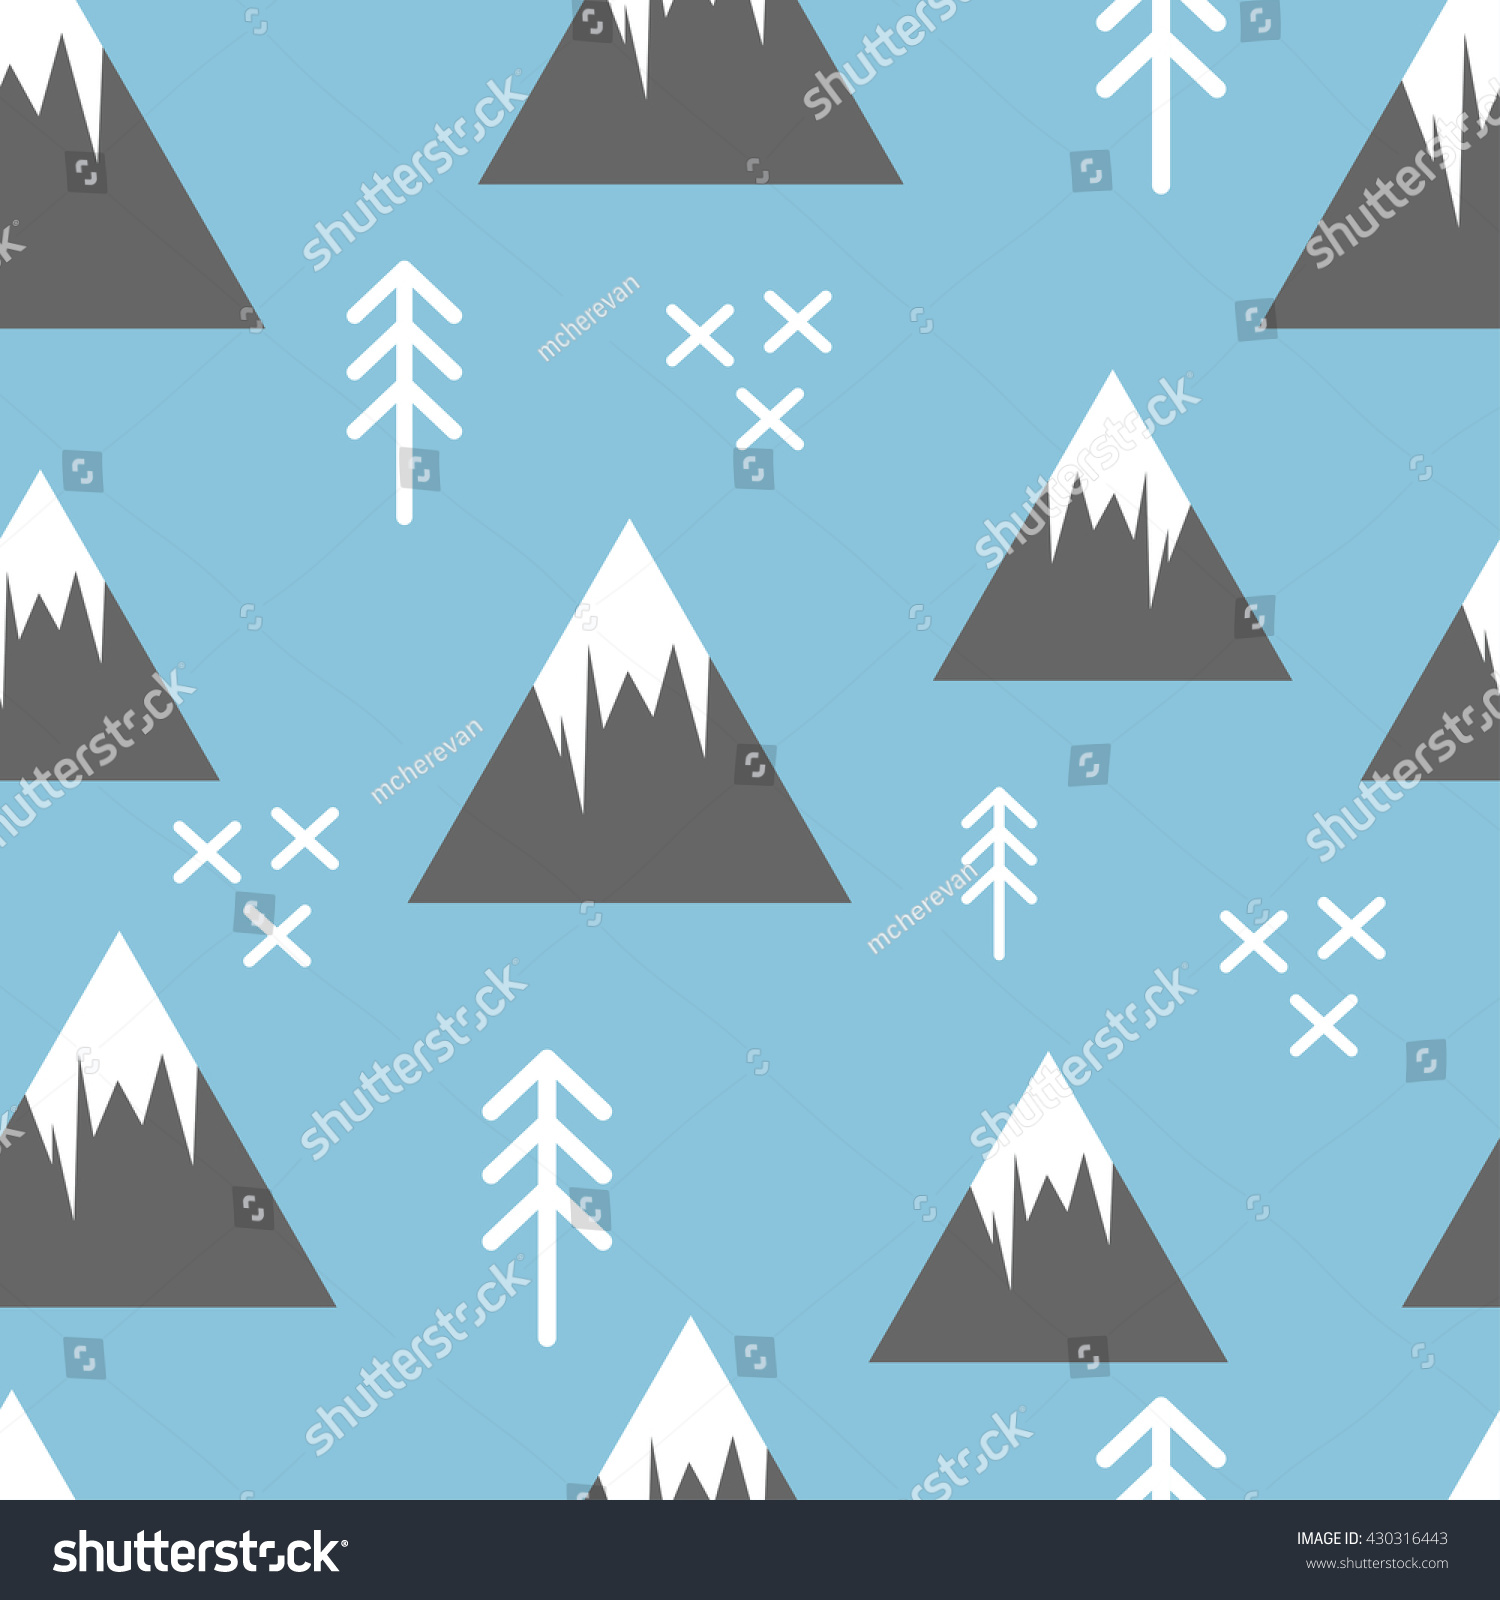 Best Wallpaper Mountain Pattern - stock-vector-seamless-pattern-with-abstract-simple-mountains-and-fir-trees-baby-and-child-clothing-wallpaper-430316443  Snapshot_645176.jpg